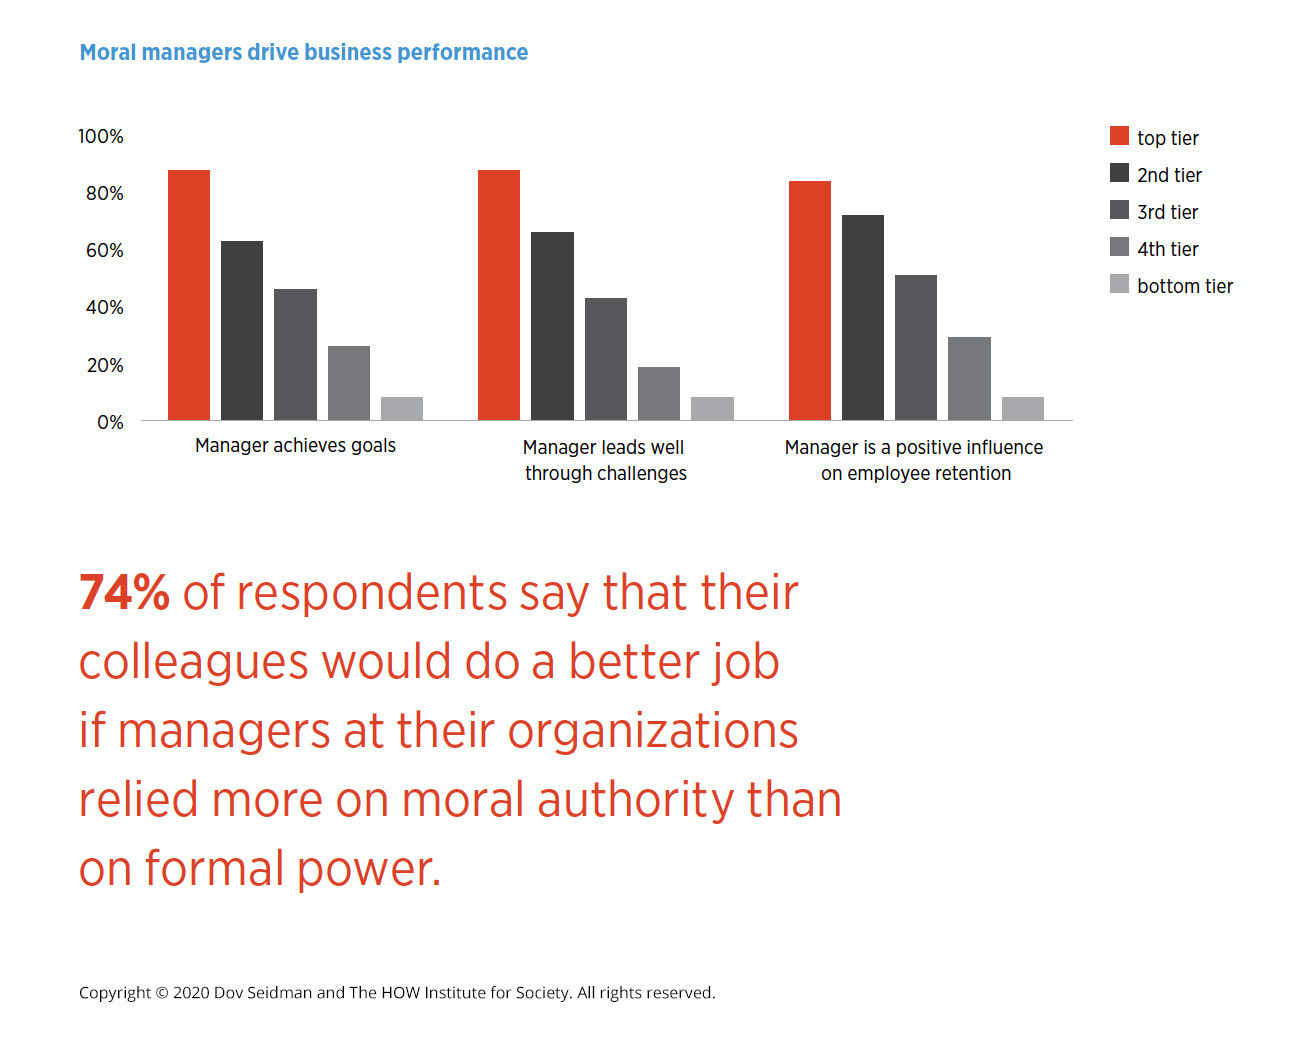 Can moral authority improve performance?